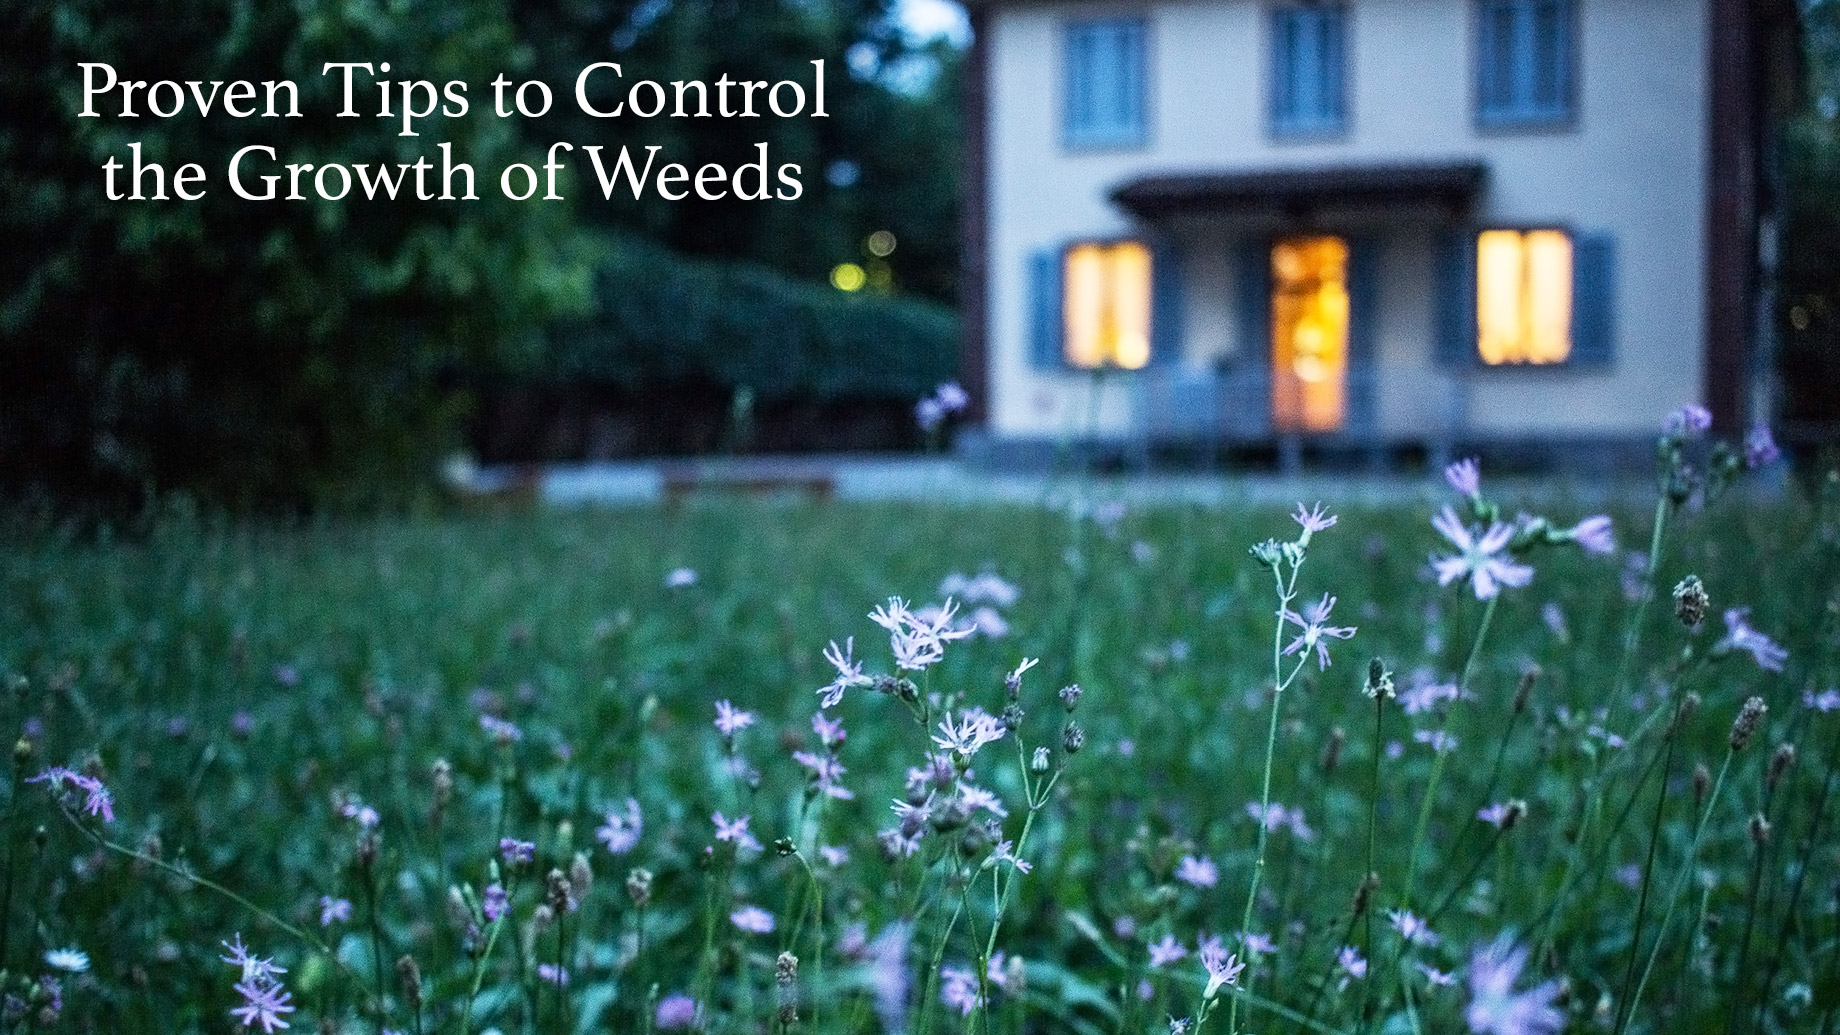 Proven Tips to Control the Growth of Weeds